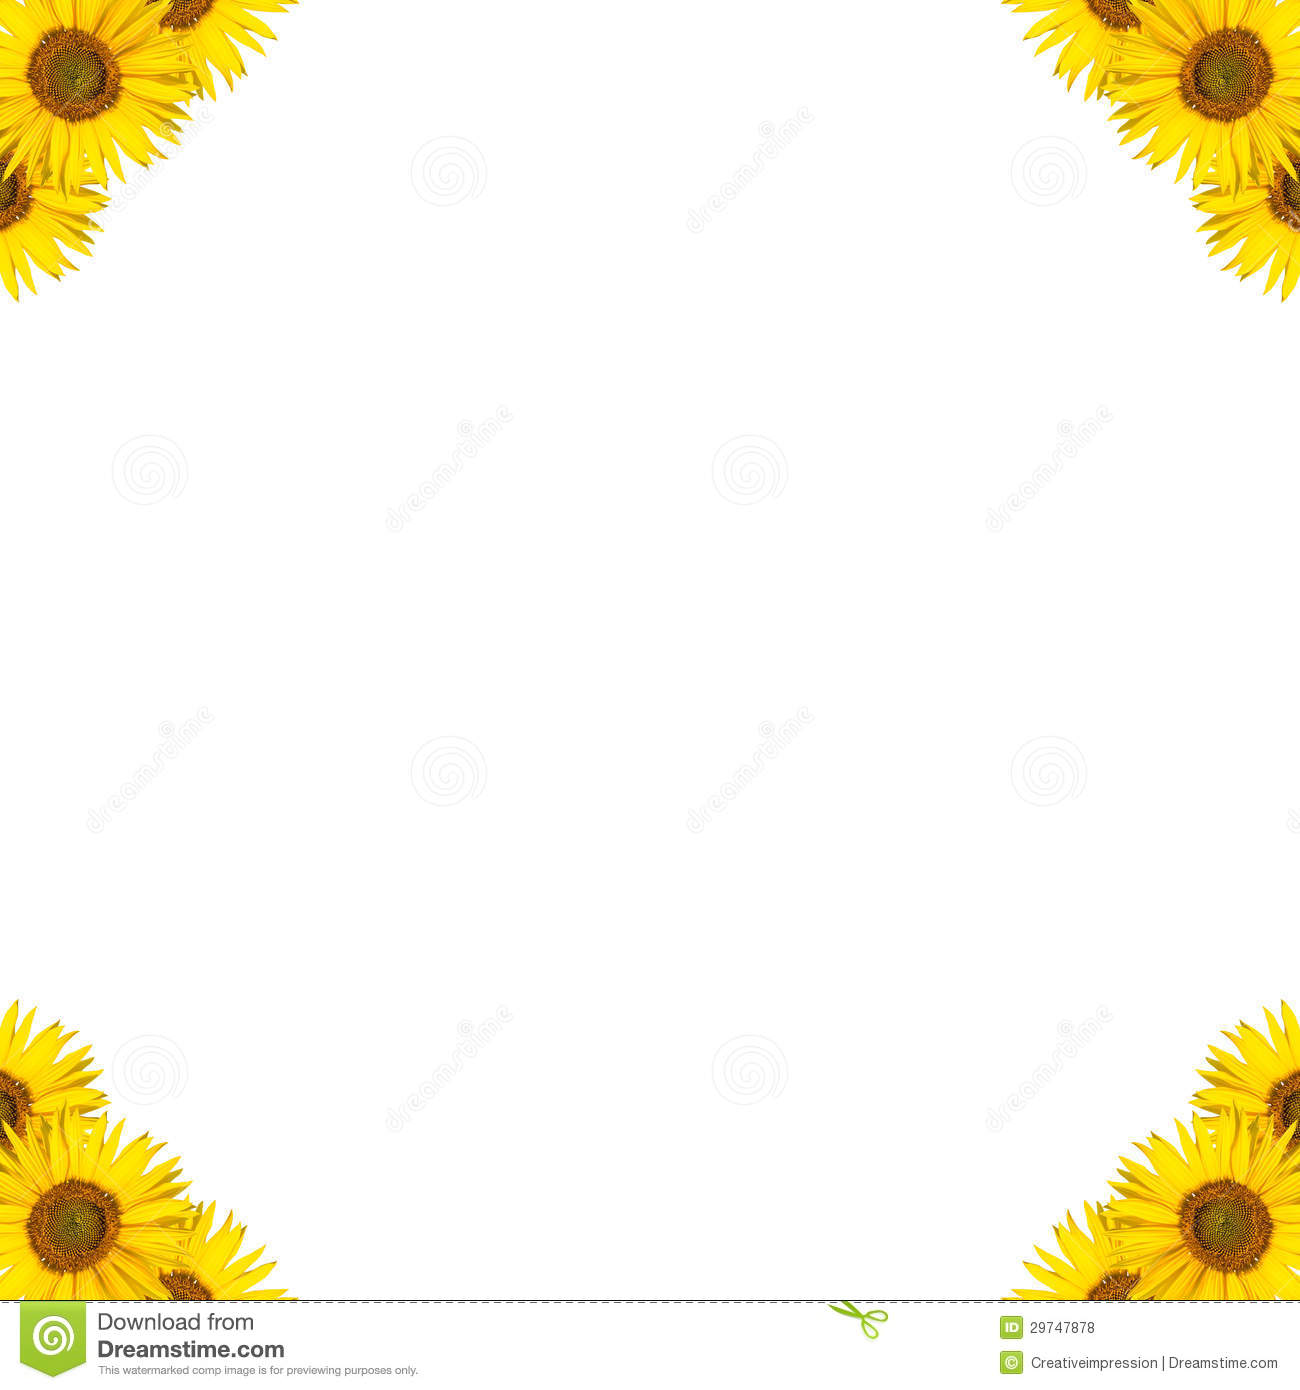 Sunflower Border Design Royalty Free Stock Photos - Image: 29747878